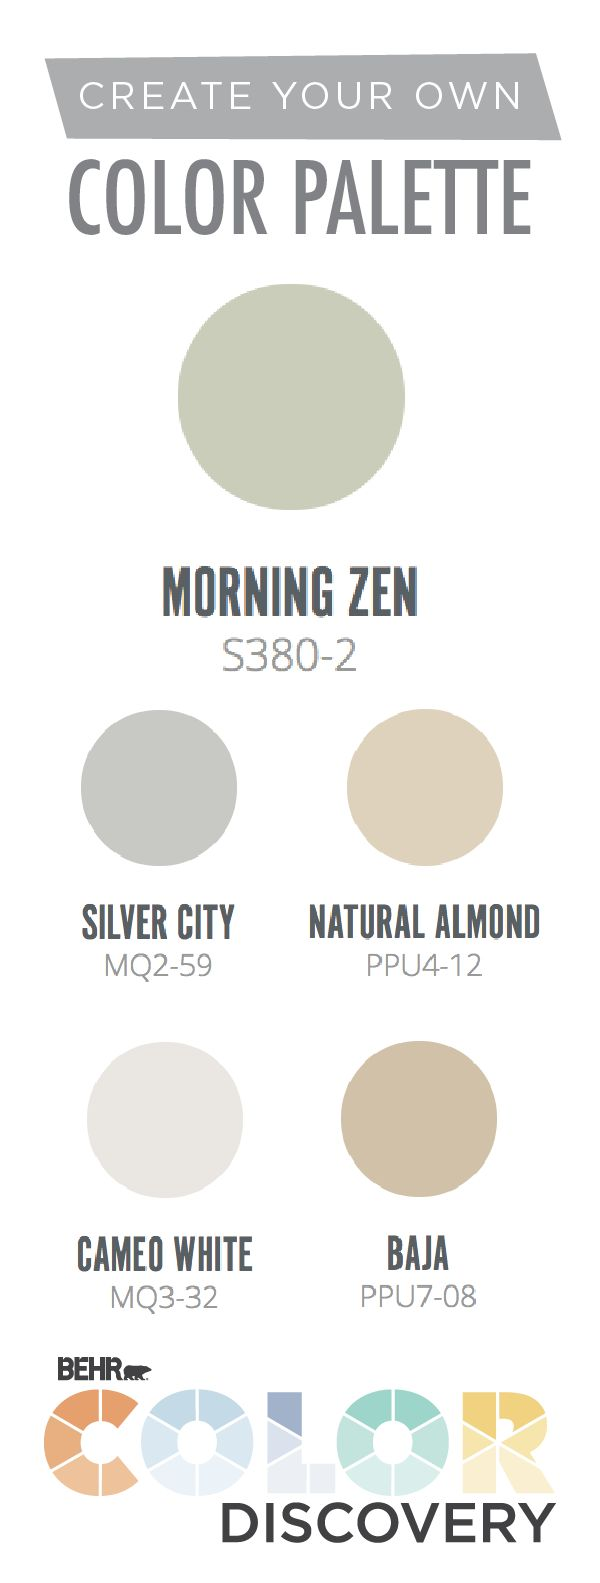 Create a paint color palette that is as unique as you are with a little help from the Color Discovery tool by BEHR Paint. Decide which room you want to paint and how you want it to feel, and Color Discovery will take care of the rest. BEHR Paint colors like Morning Zen, Silver City, Natural Almond, Cameo White, and Baja come together to create a custom color scheme that you're sure to love.